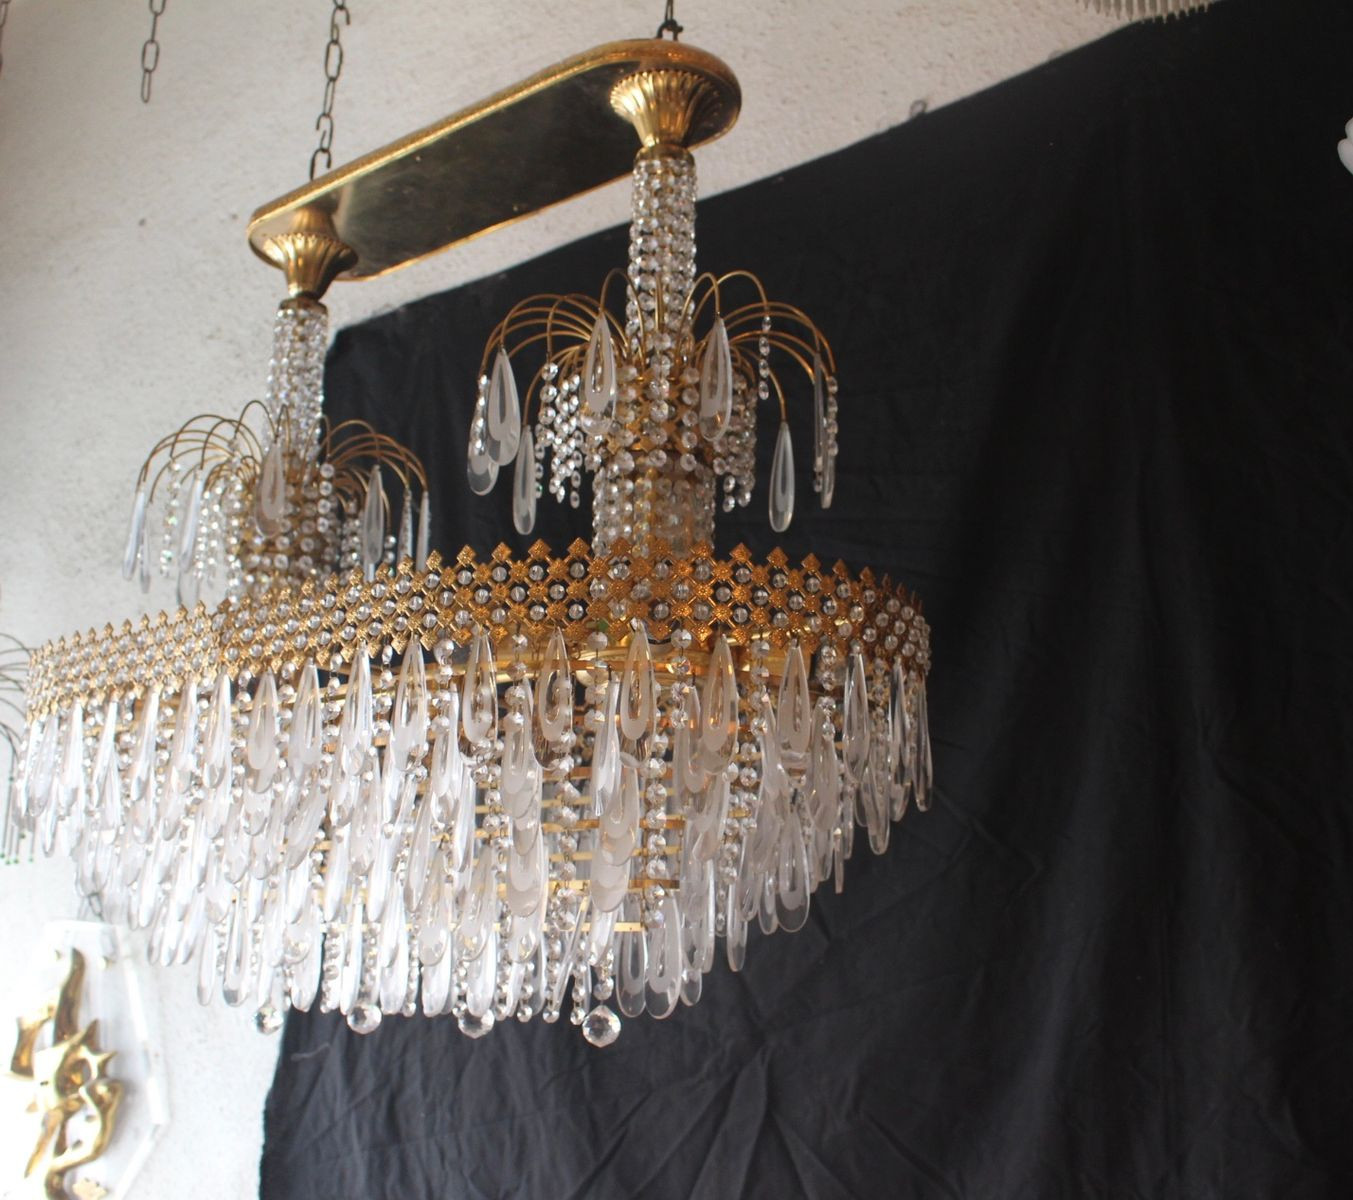 17 Famous Murano Glass Handbag Vase 2021 free download murano glass handbag vase of vintage murano glass swarovski crystal chandelier 1980s for sale throughout a7308 00